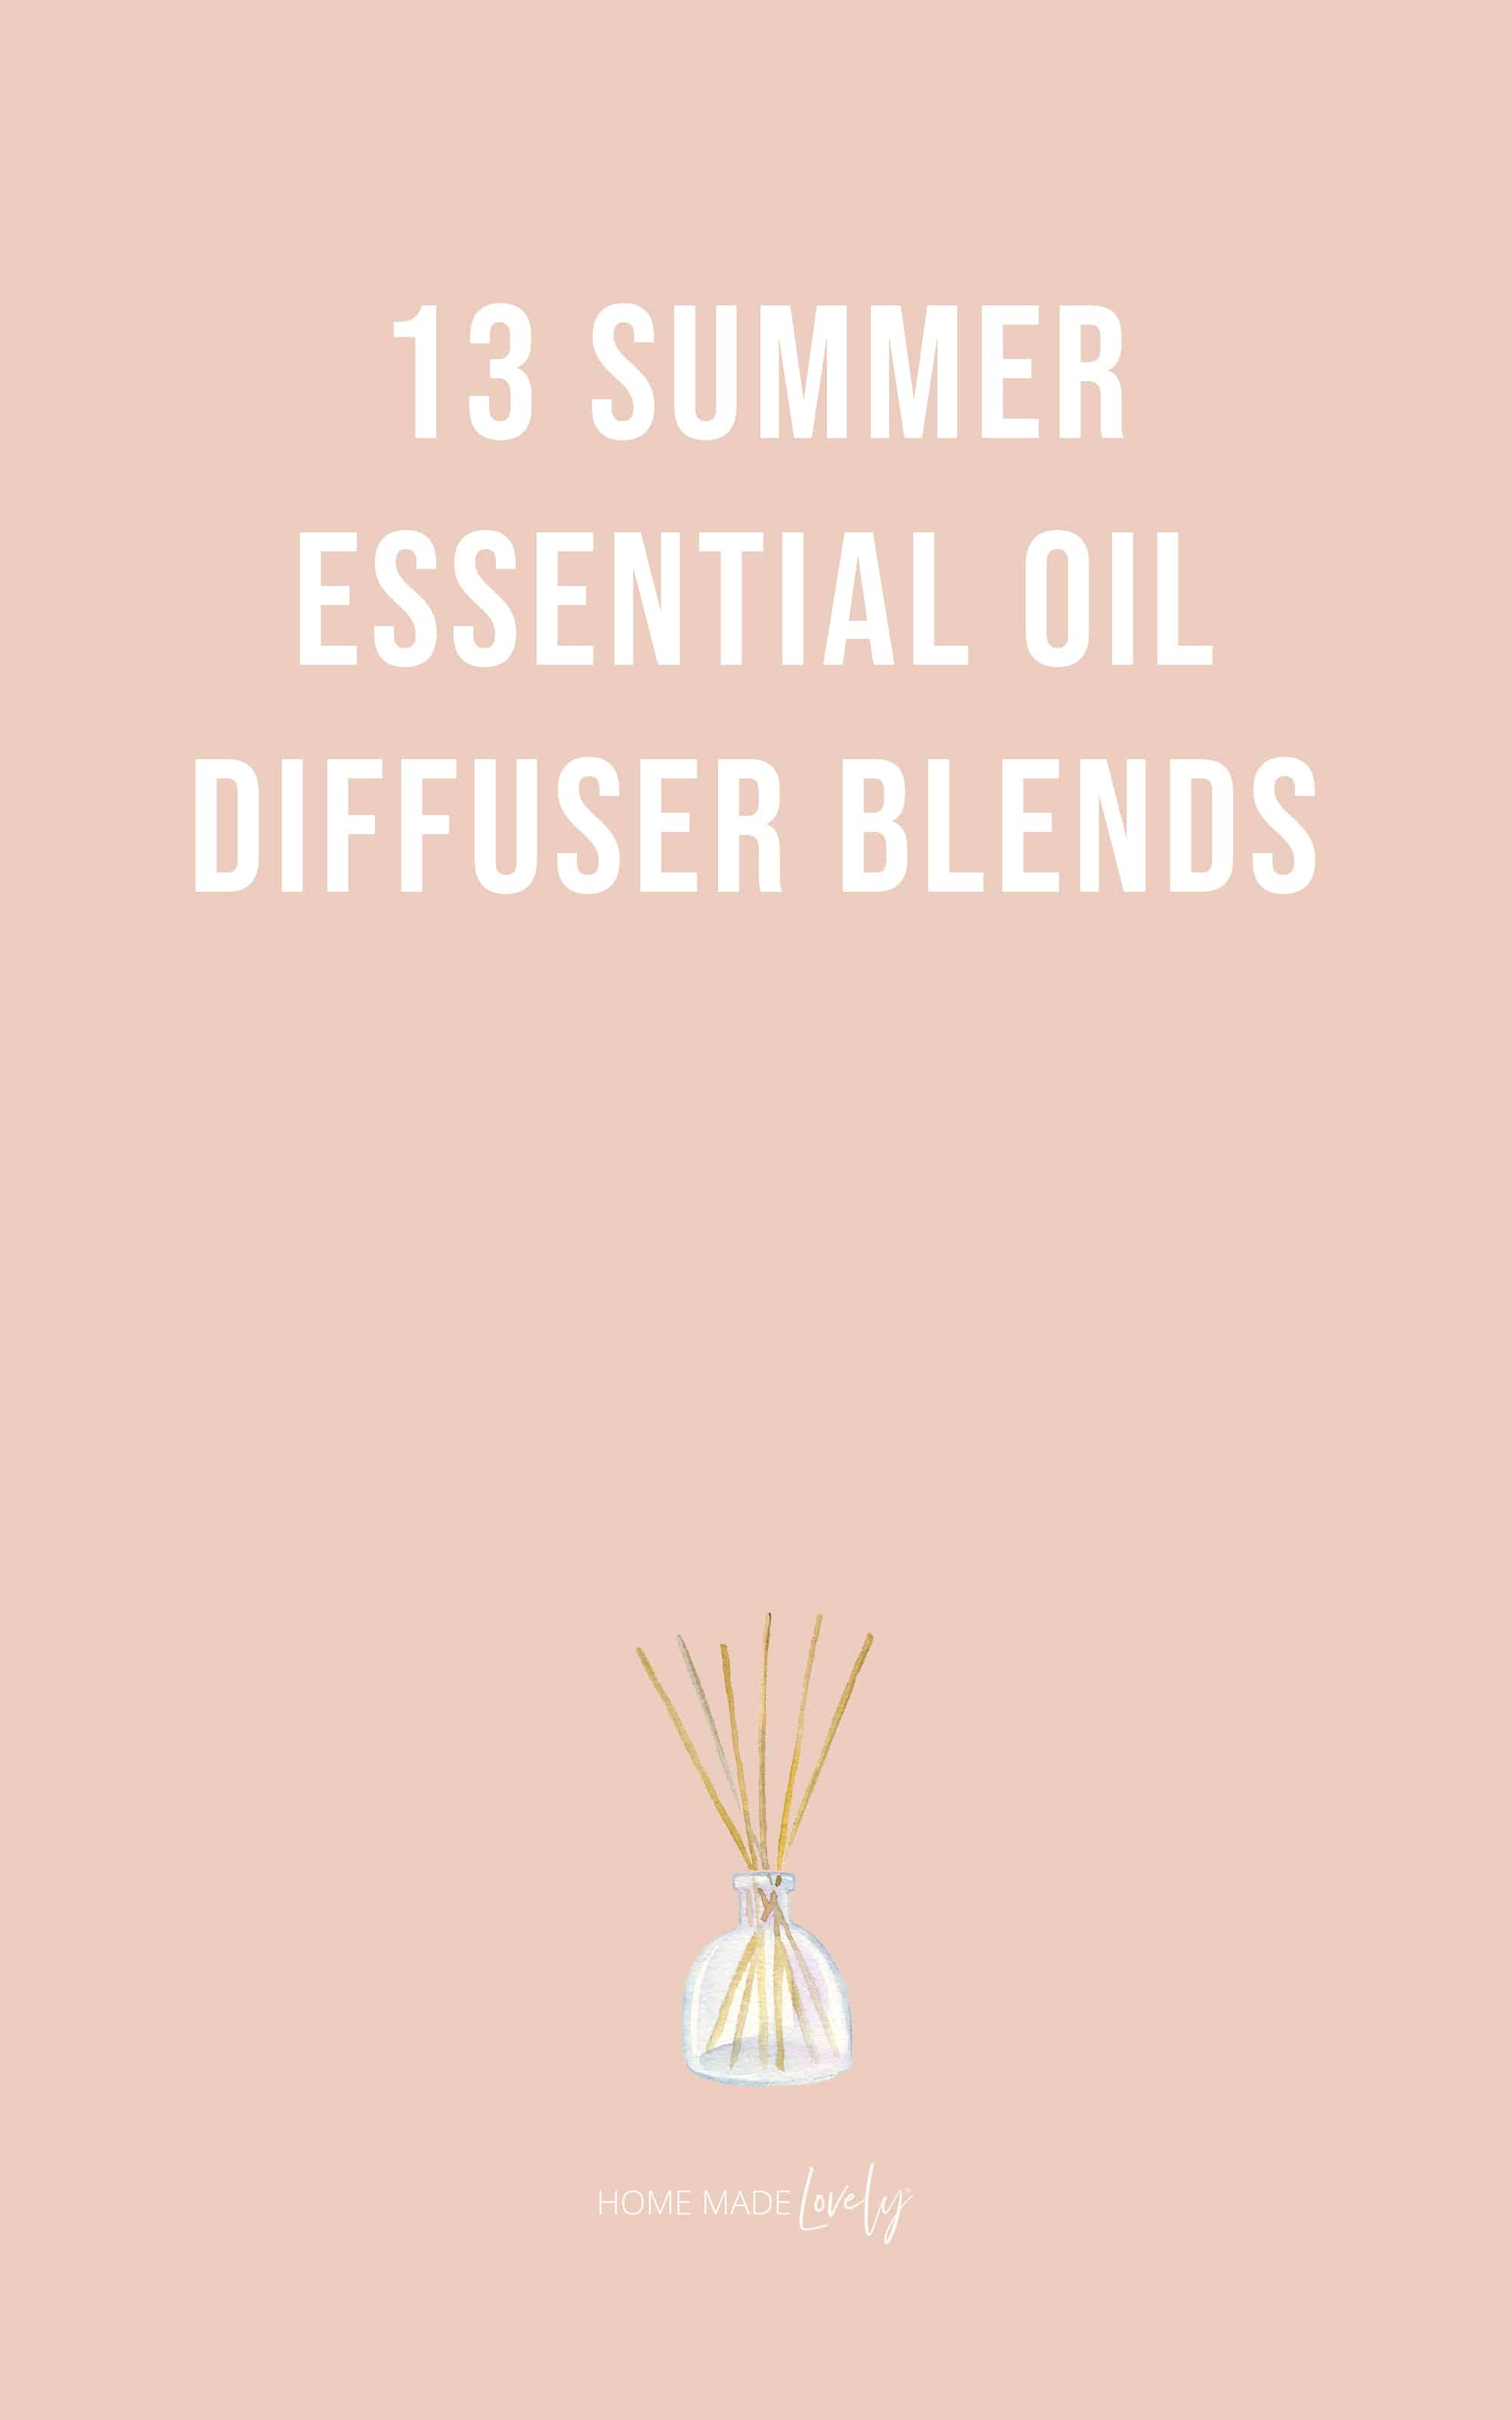 white text on pink background that says 13 summer essential oil diffuser blends